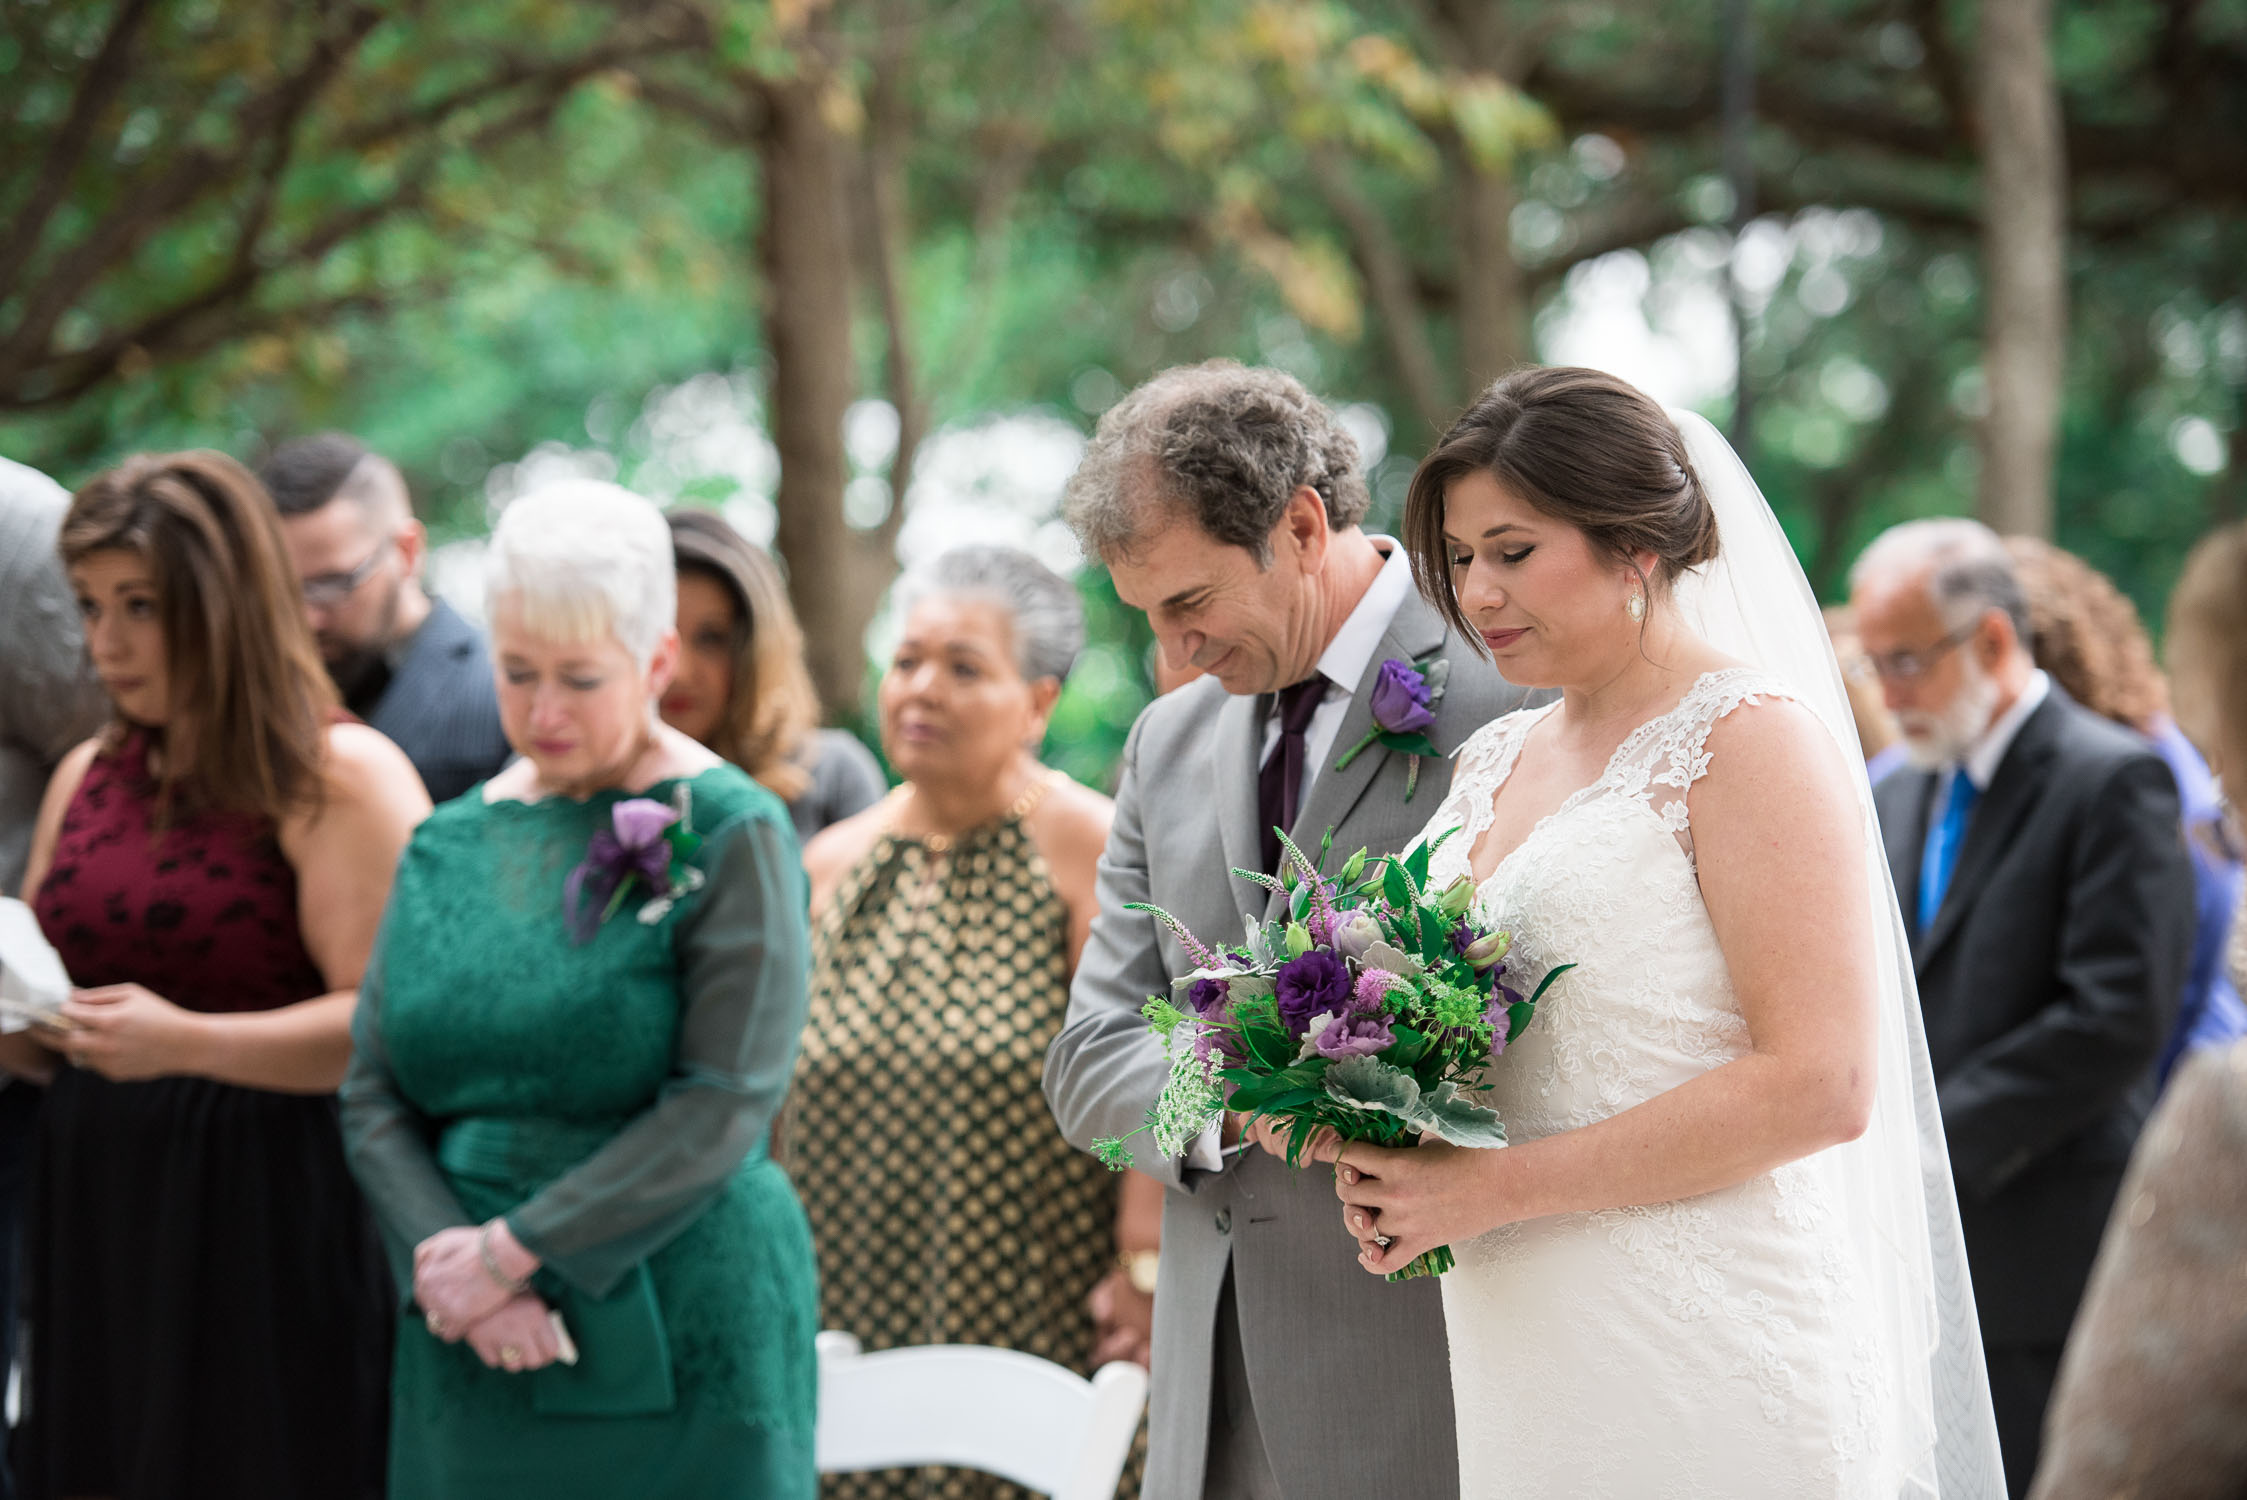 Alex and Austin Wedding Photography at Mercury Hall in Texas-75.jpg